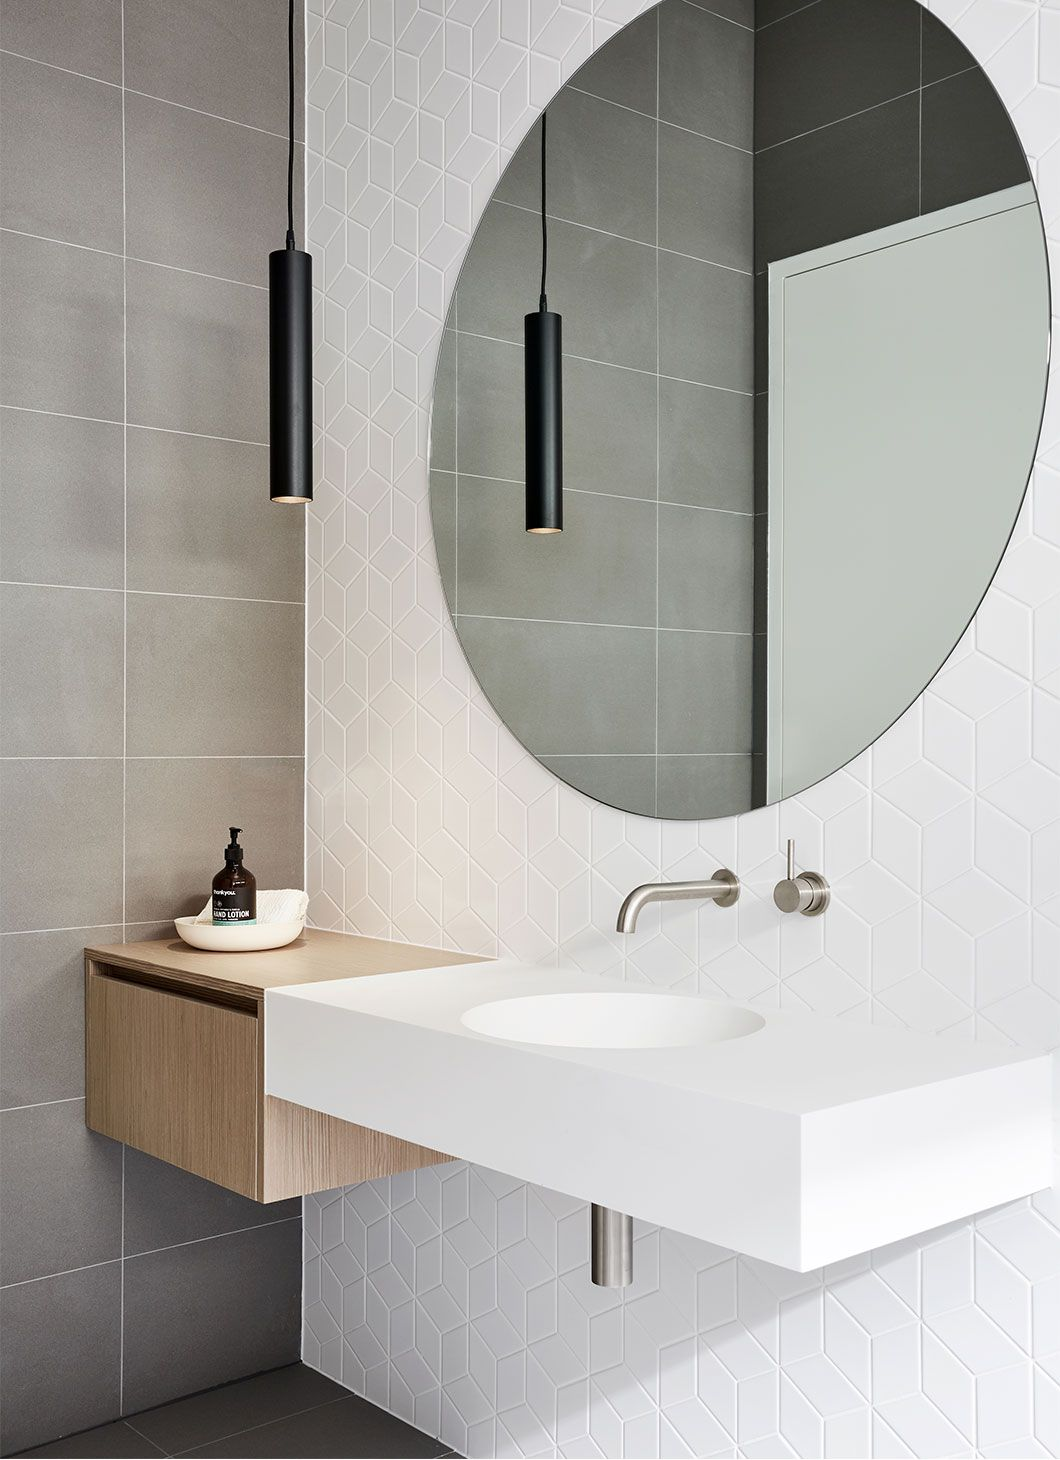 Powder room | WC - space | Pinterest | Powder room, Room and Melbourne